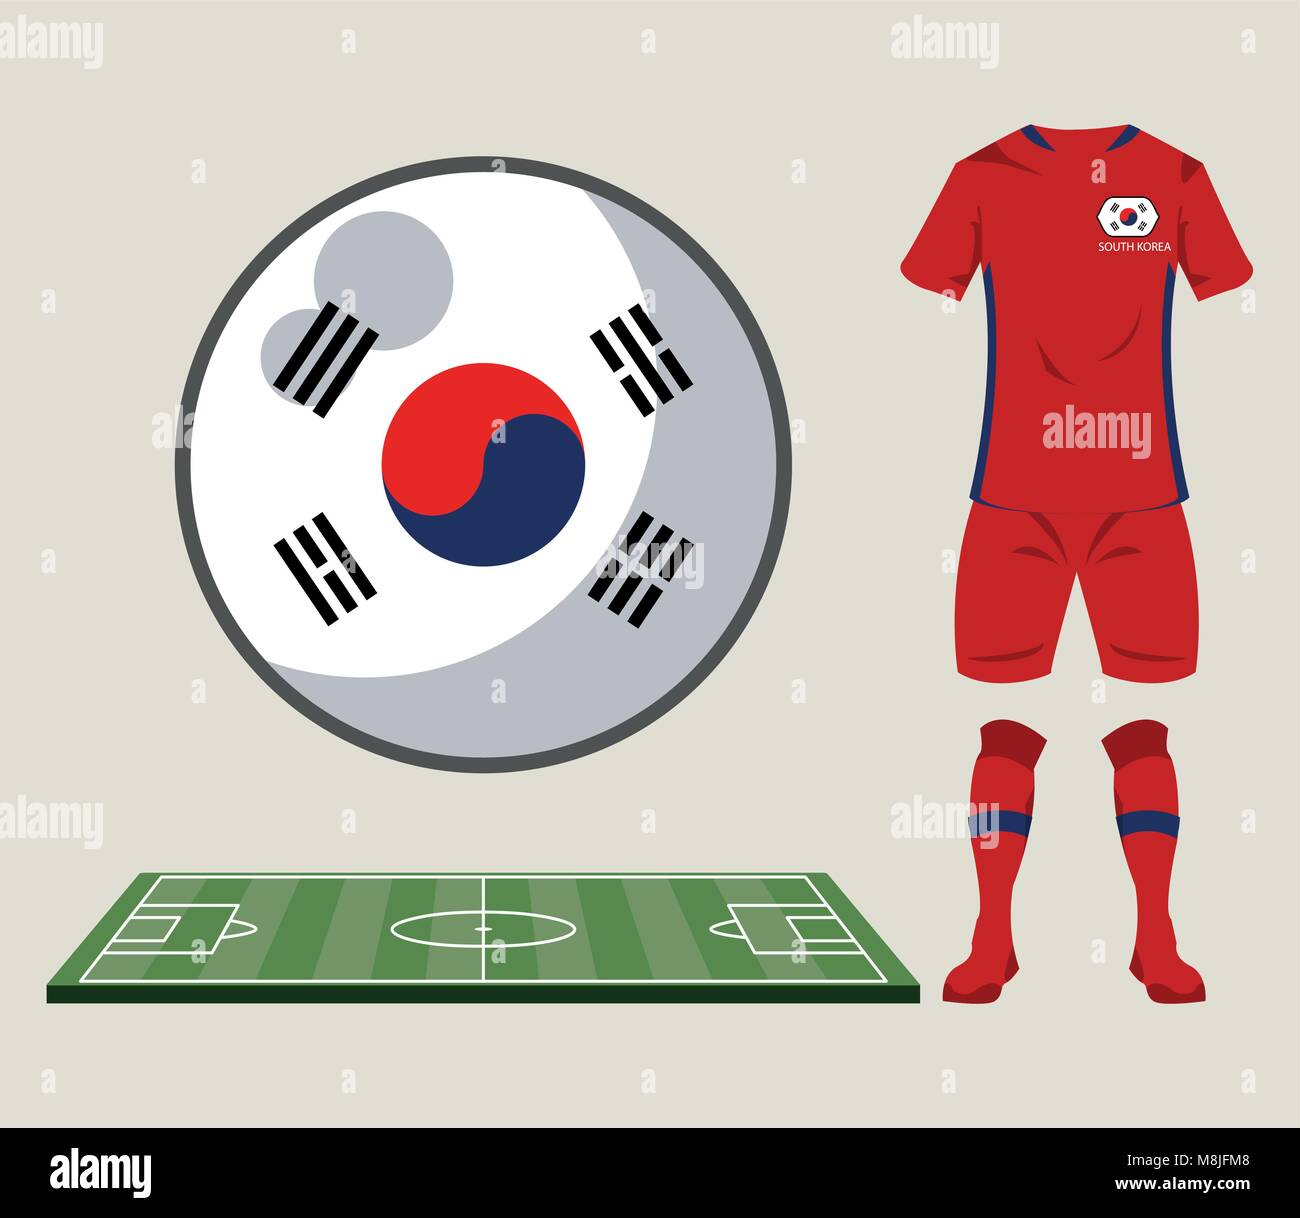 c689fd1a5a0 Football south korea sport wear vector illustration graphic design - Stock  Image